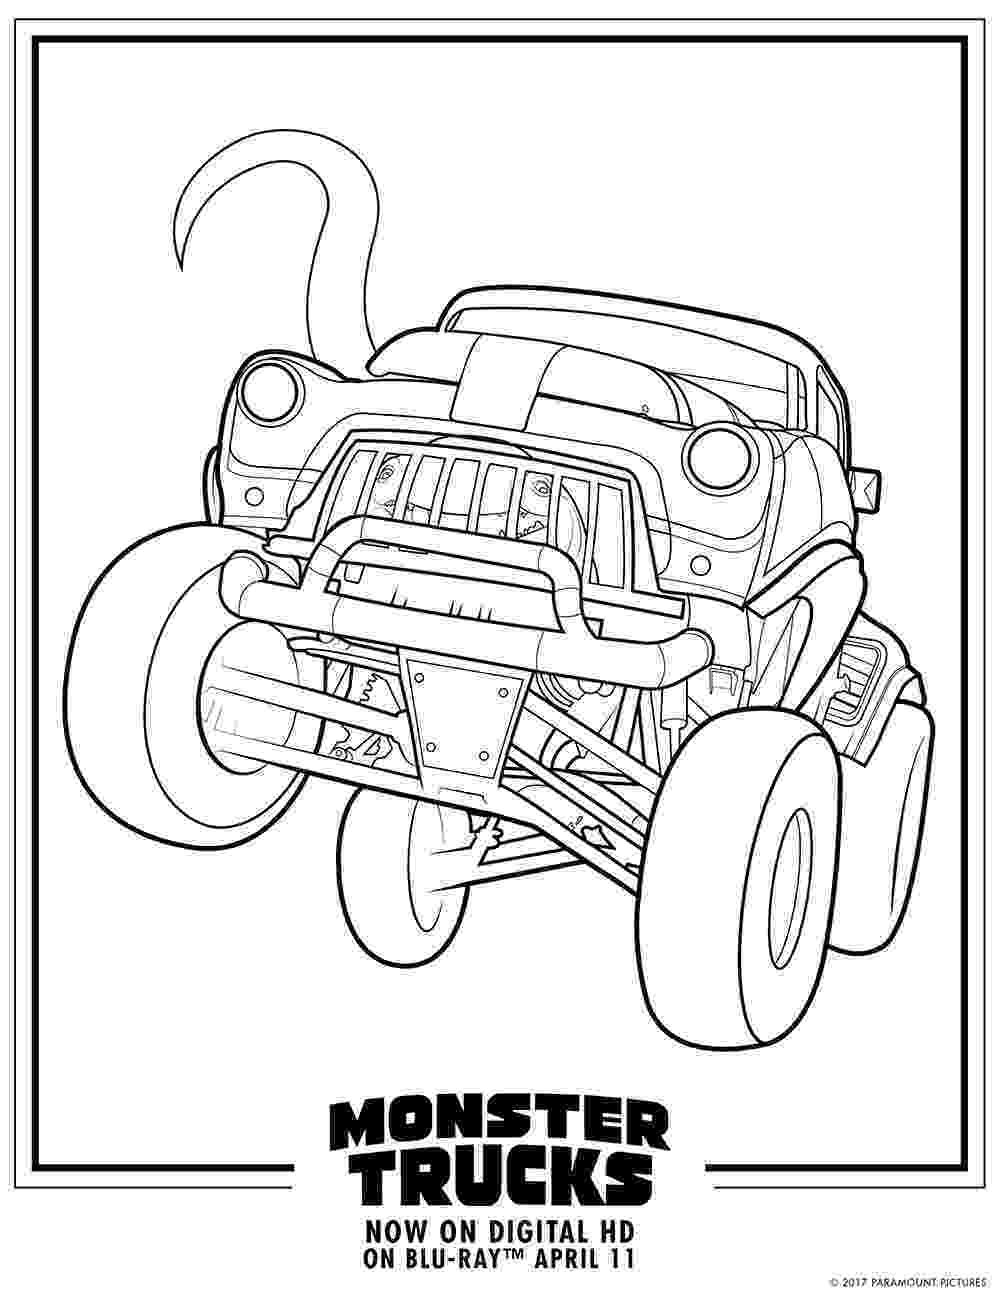 monster truck color page max d monster truck coloring page free printable page monster color truck